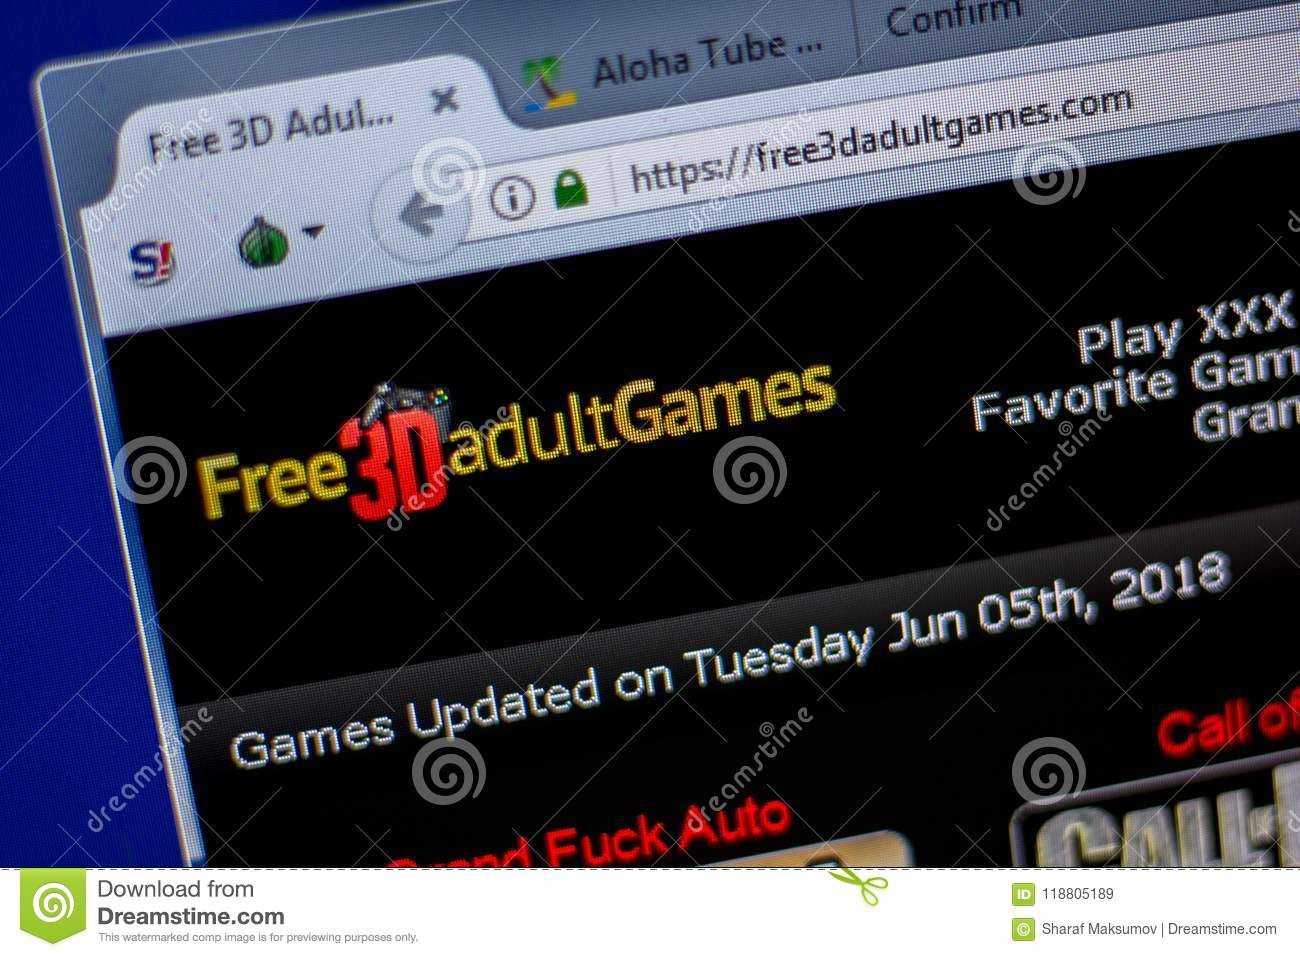 Ryazan, Russia - June 05, 2018: Homepage of Free3dAdultGames website on the  display of PC, url - Free3dAdultGames.com.